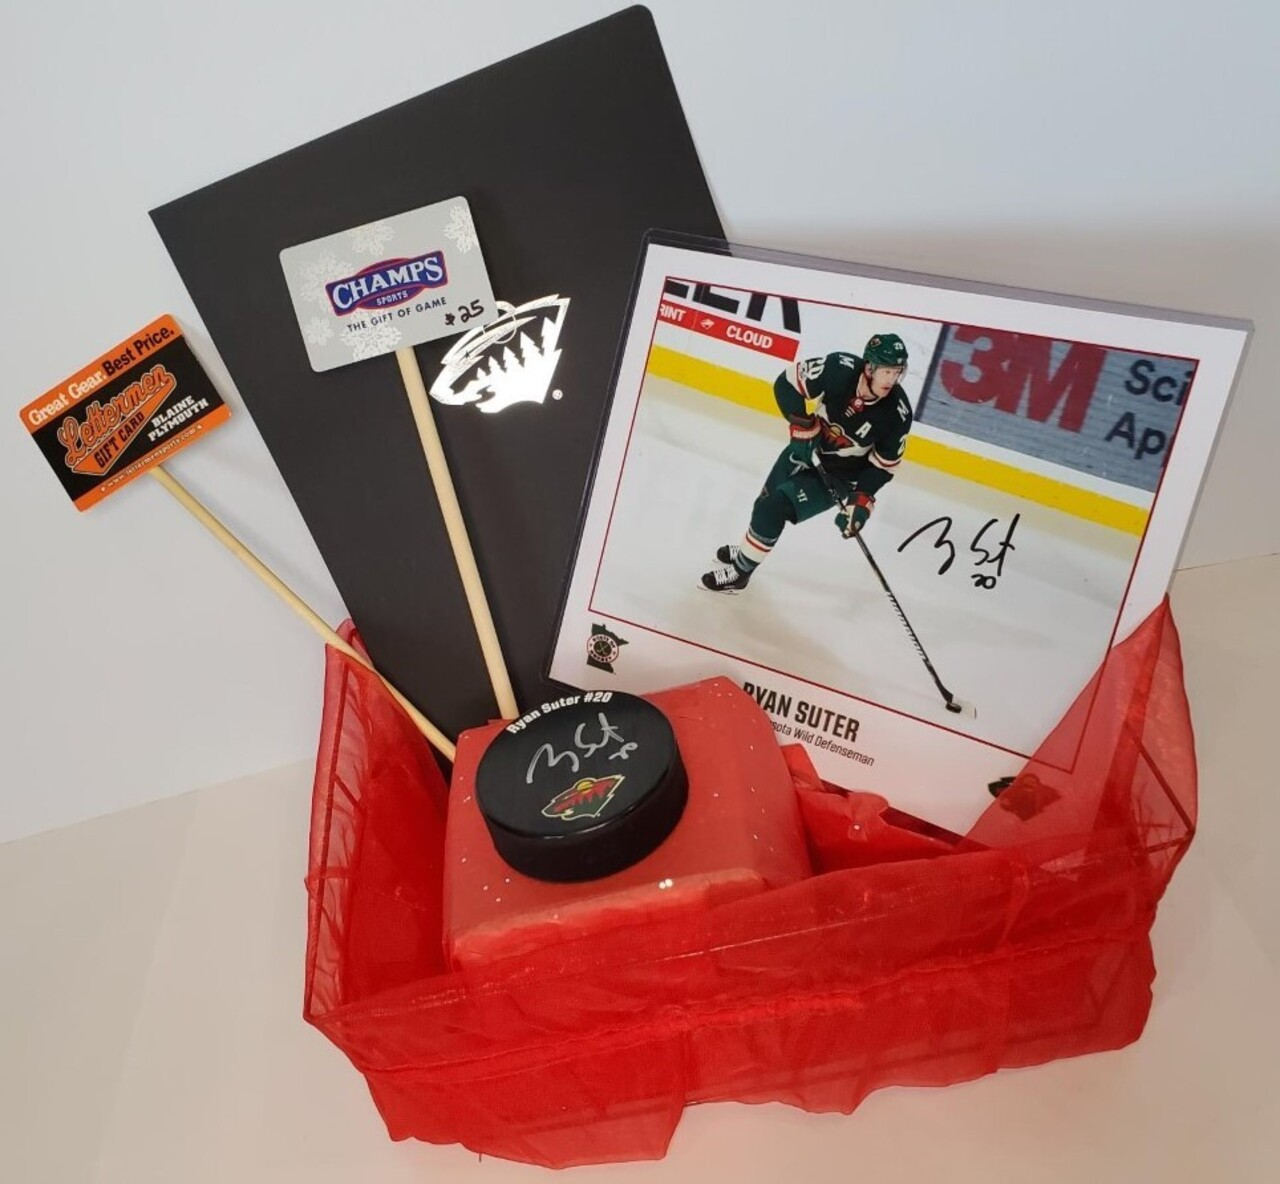 401. Signed Ryan Suter Puck and Photo